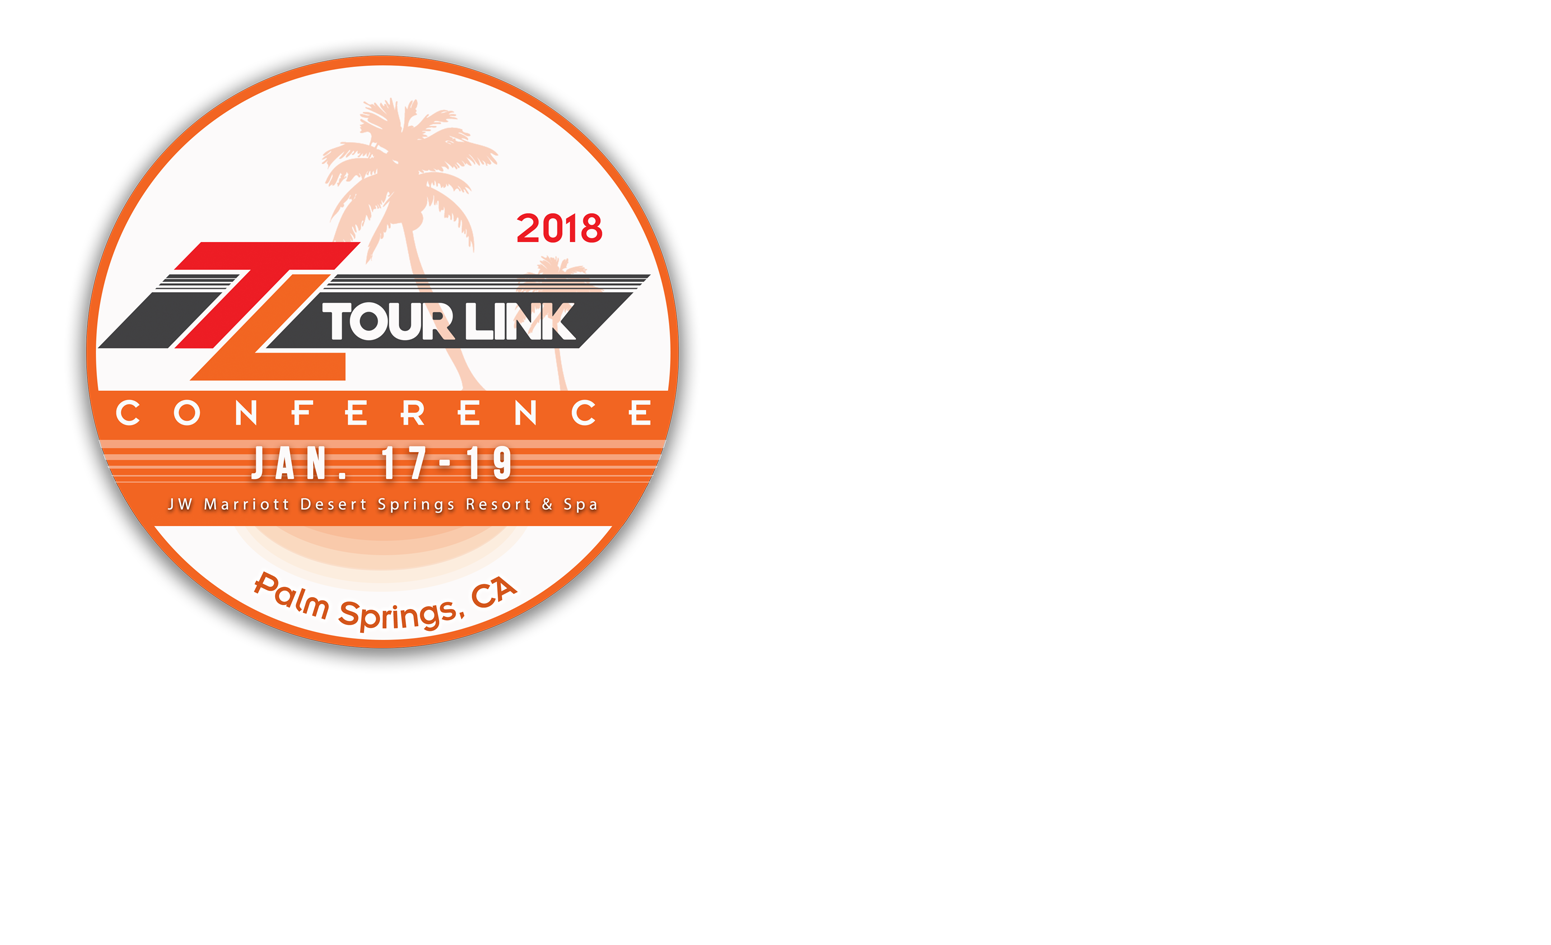 Tour Link Conference 2018